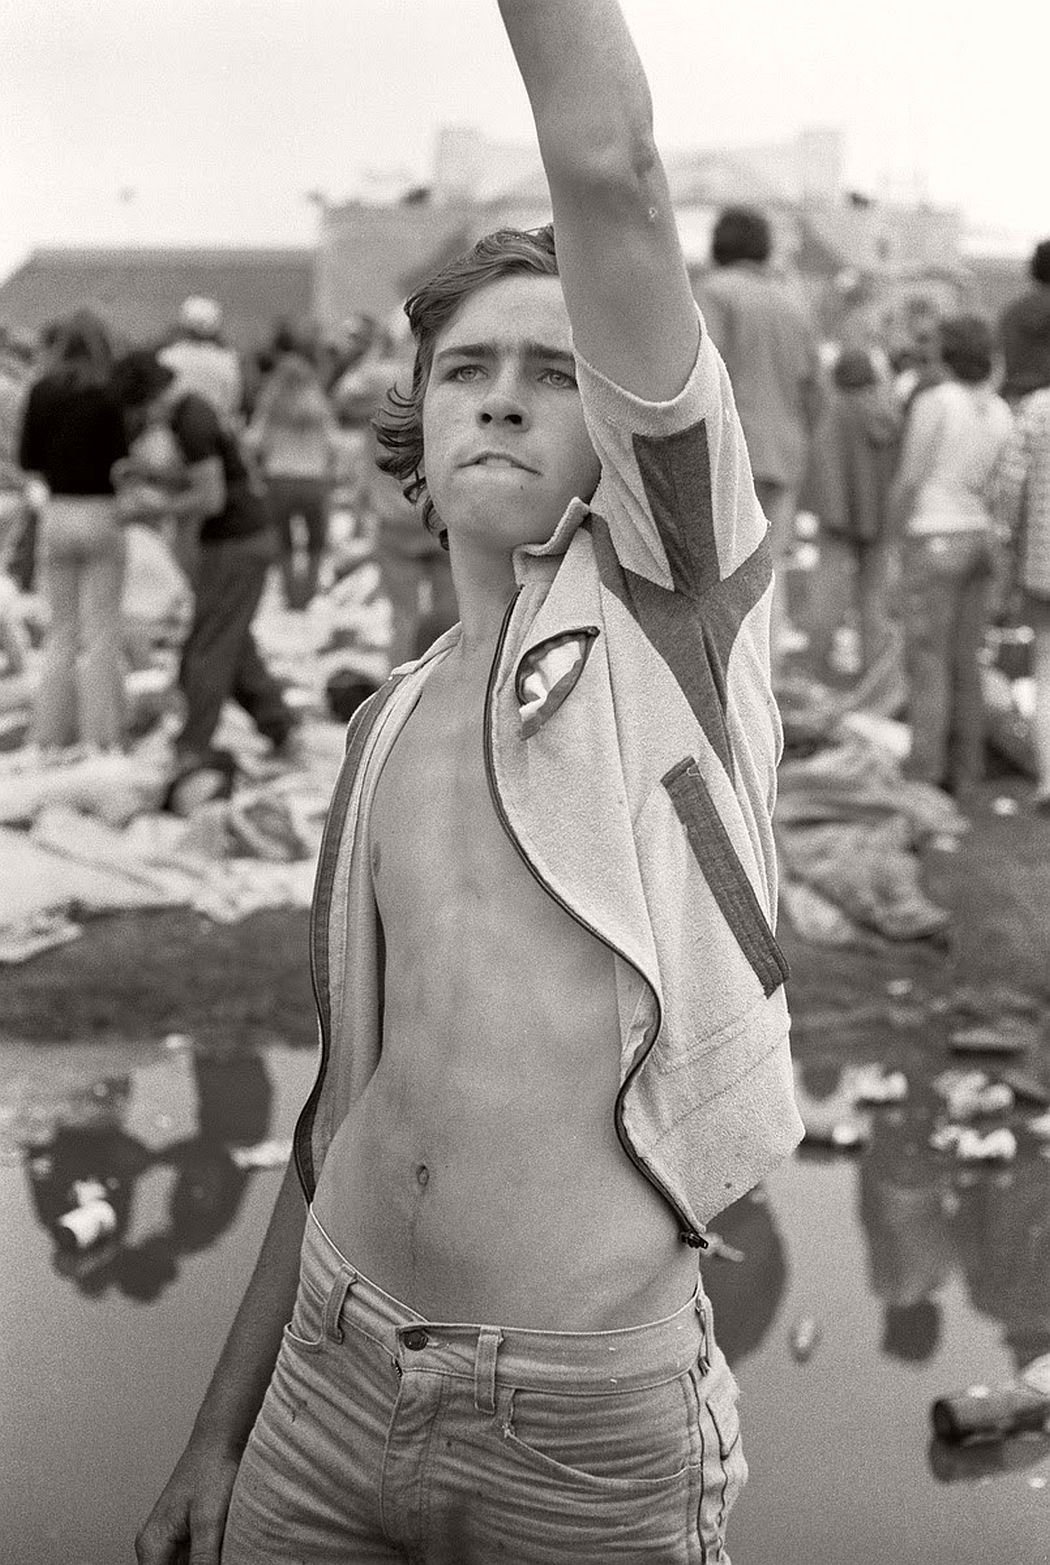 vintage-bw-photos-of-rolling-stones-fans-by-joseph-szabo-1978-18